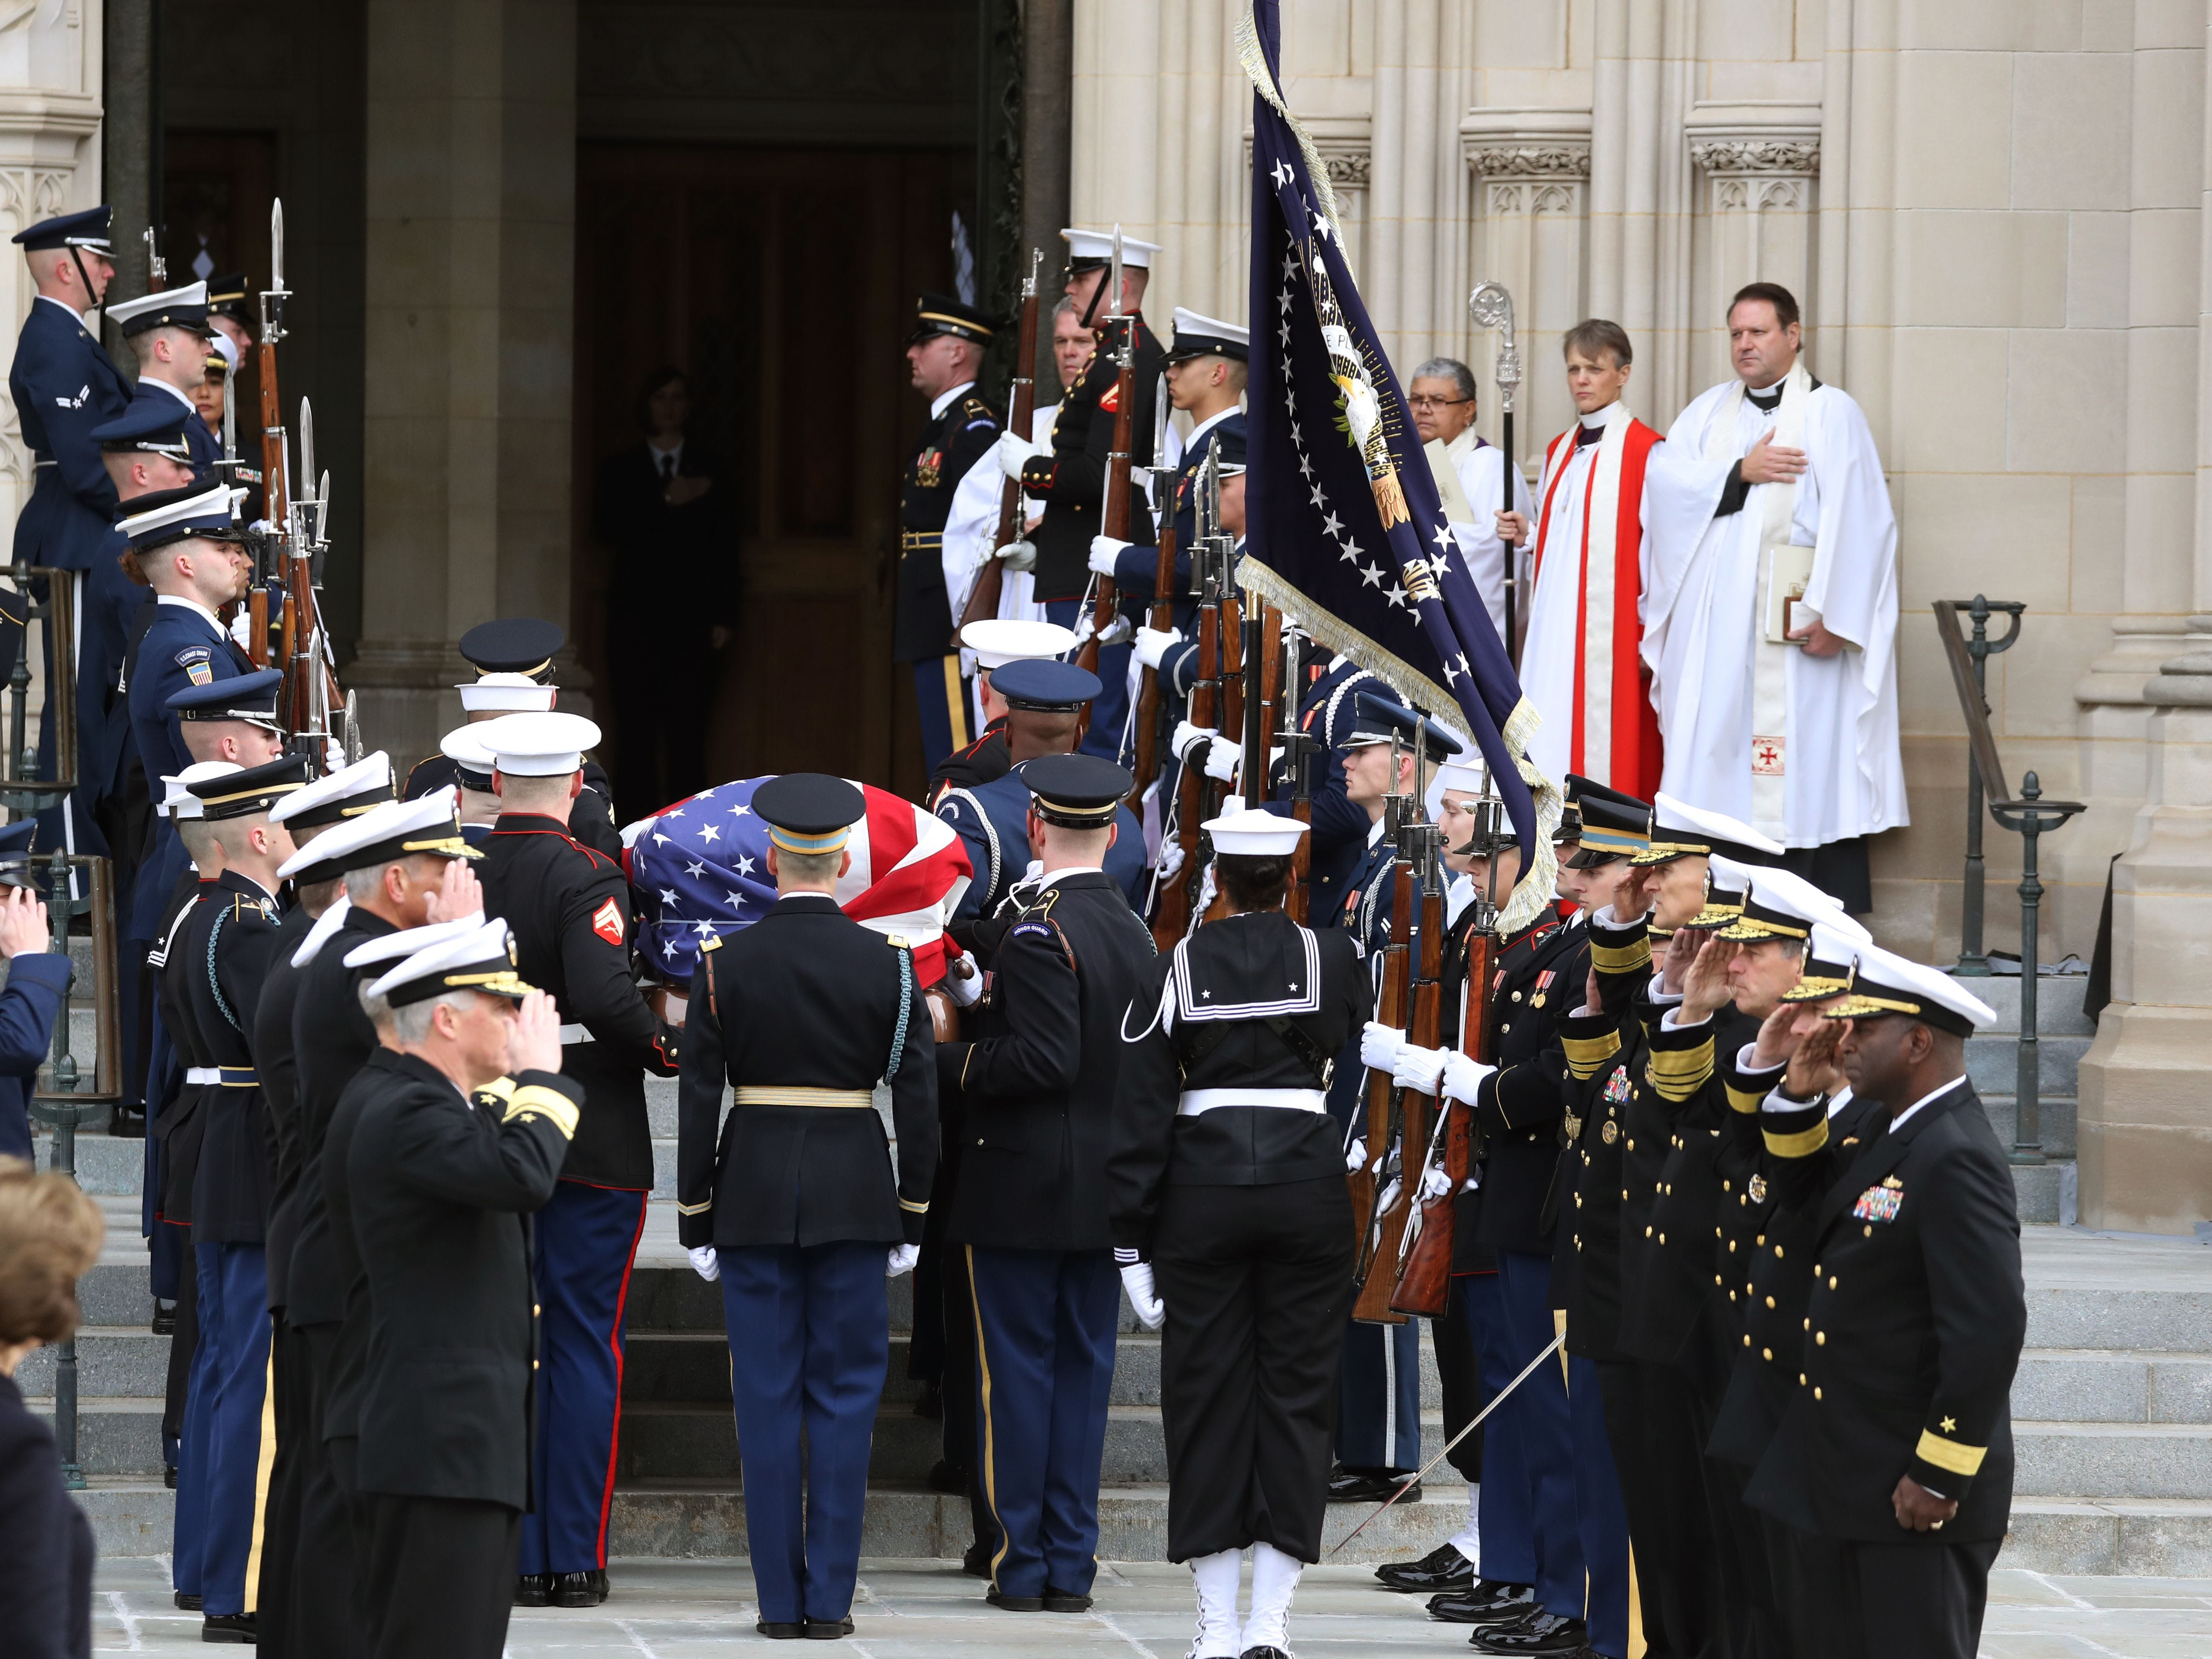 The remains of former U.S. President George H. W. Bush arrive at the National Cathedral in Washington, D.C., for his funeral on Dec. 5, 2018.